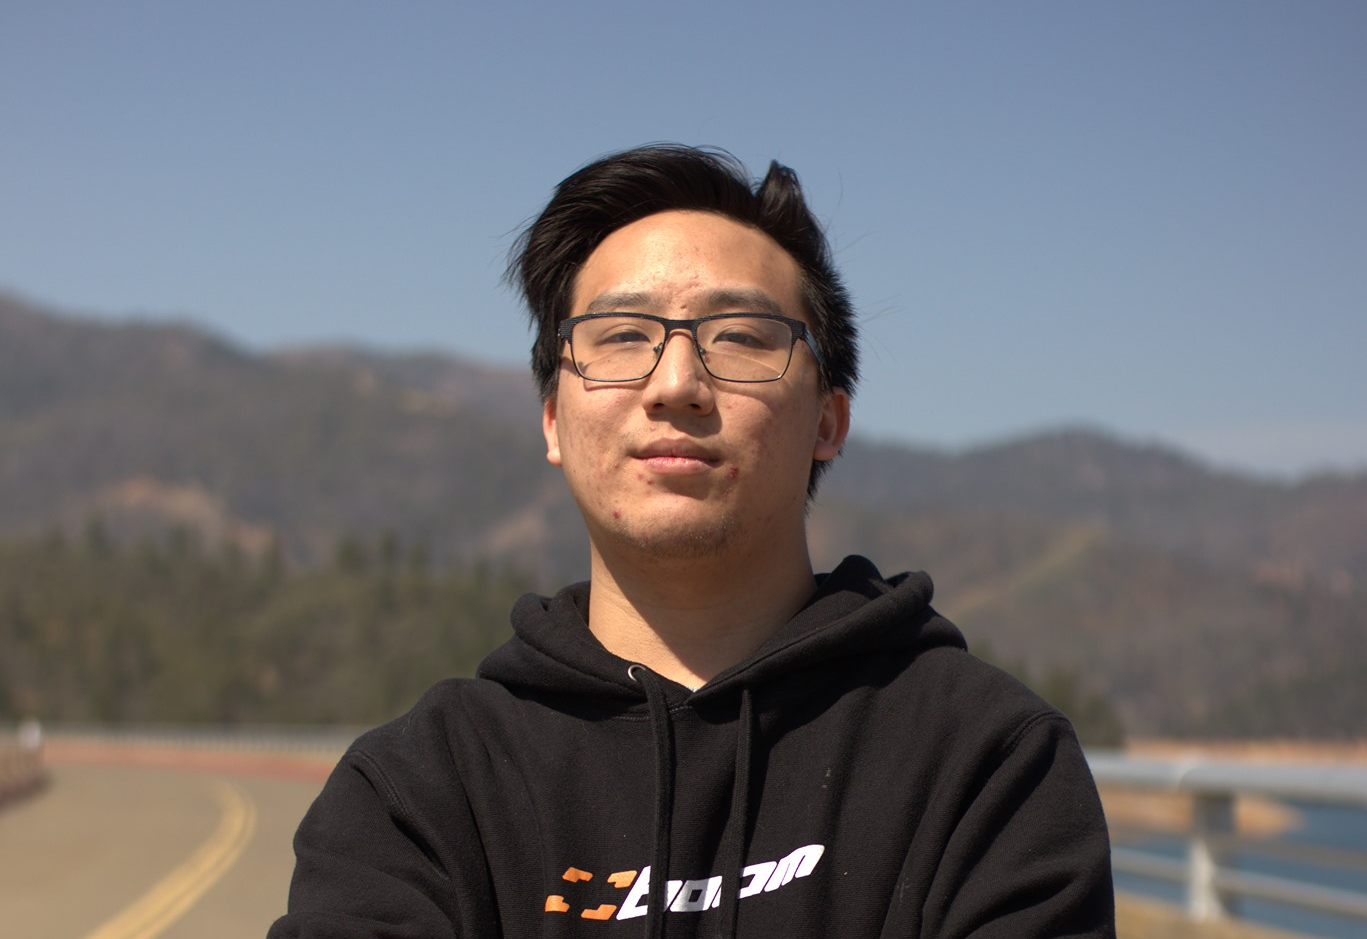 NAECAD Interview: Kyle Soo Hoo, American Video Game League (AVGL)